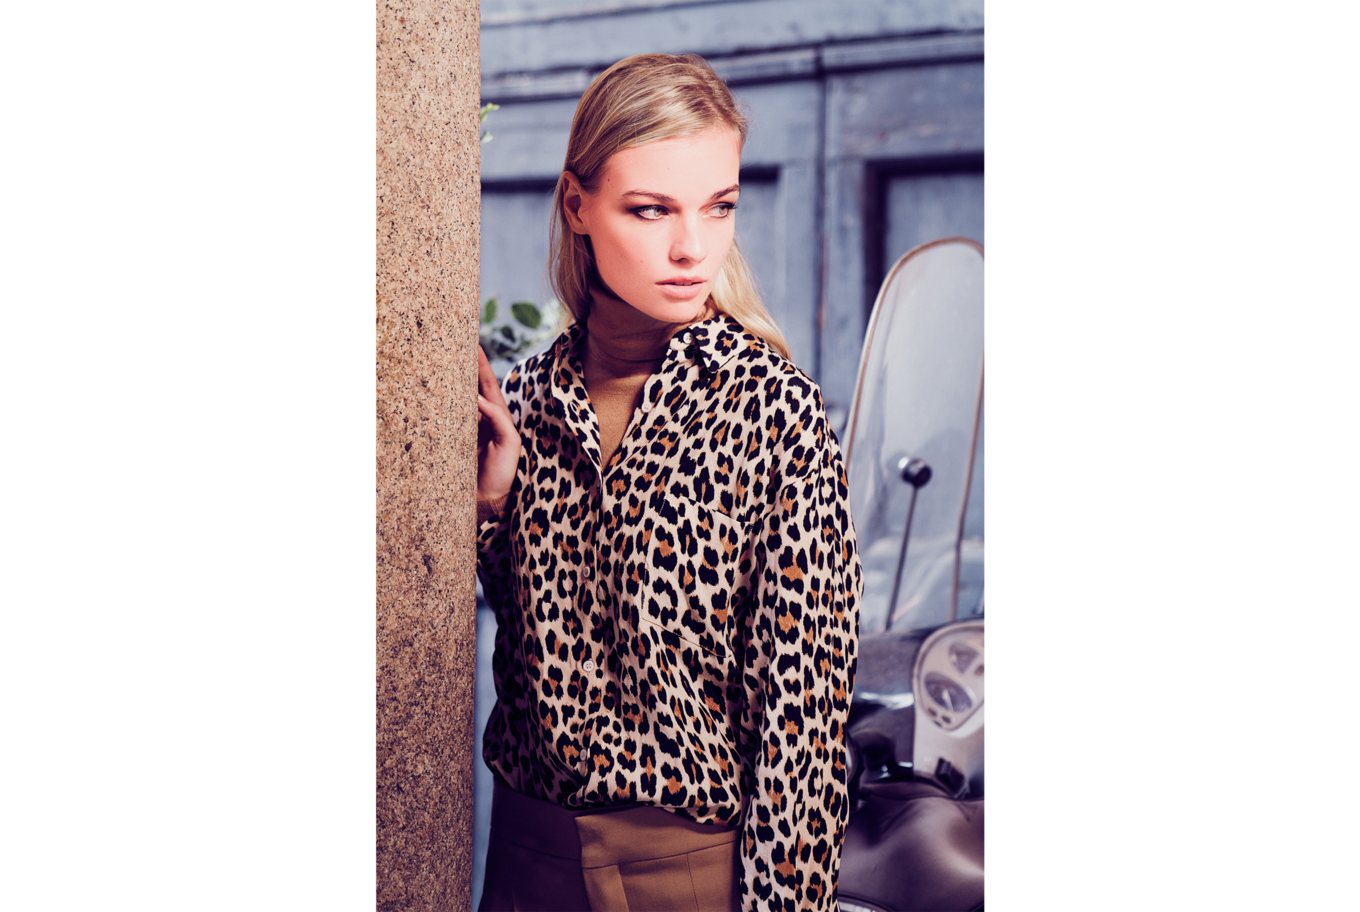 daniel gossmann sony alpha 7RM3 model in leopardskin shirt leans against a wall